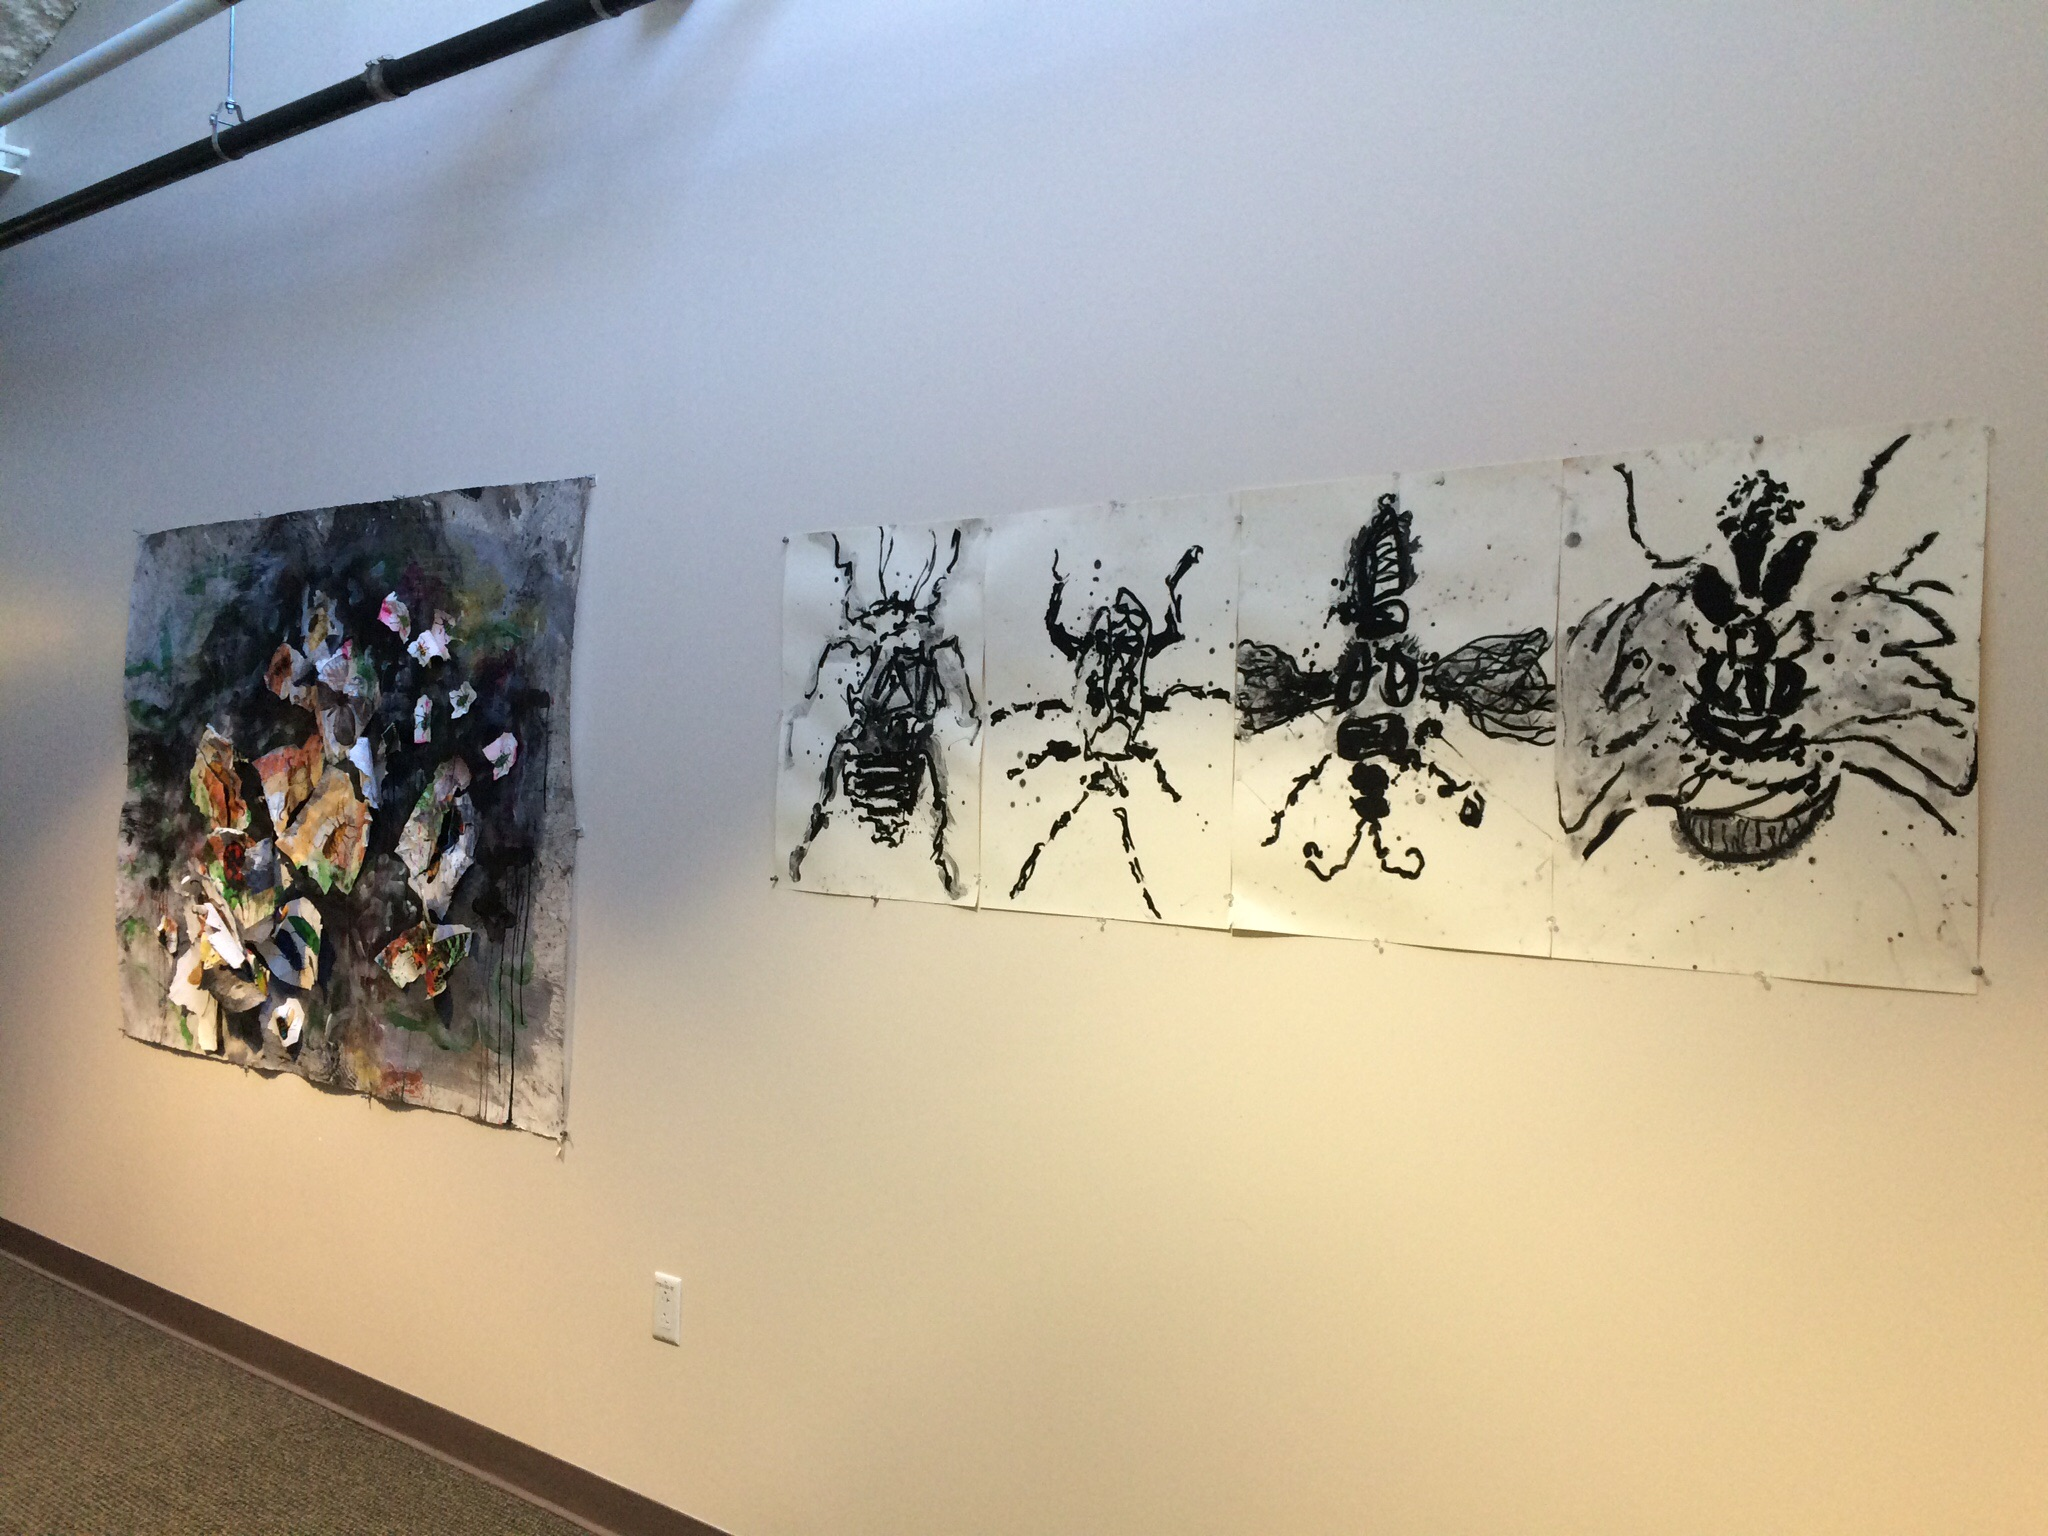 Temporarily on exhibit at the Glassell studio school.